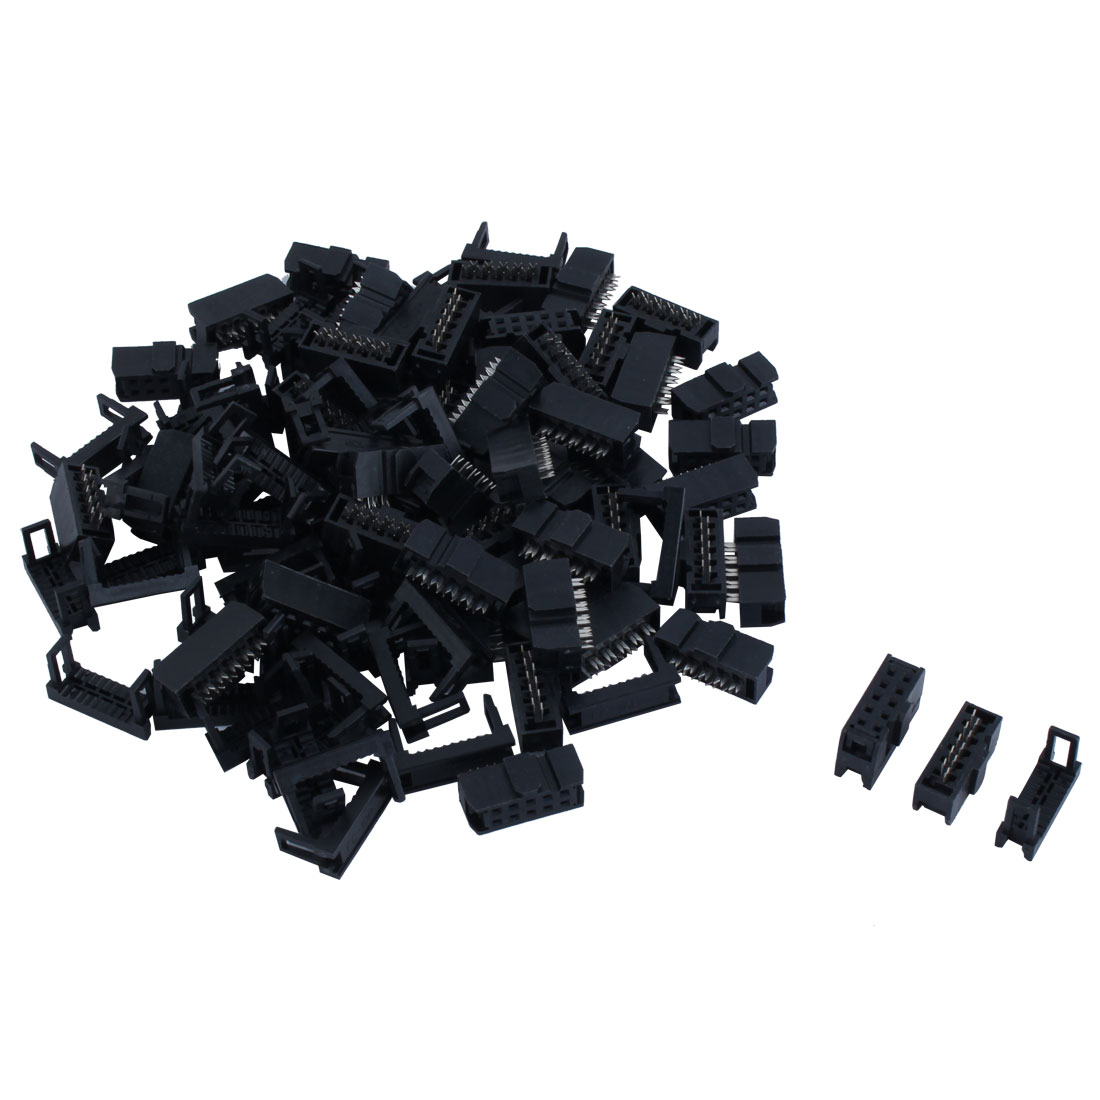 50 Pcs 2.54mm Pitch 10 Pin IDC Header w Strain Relief for Flat Ribbon Cable